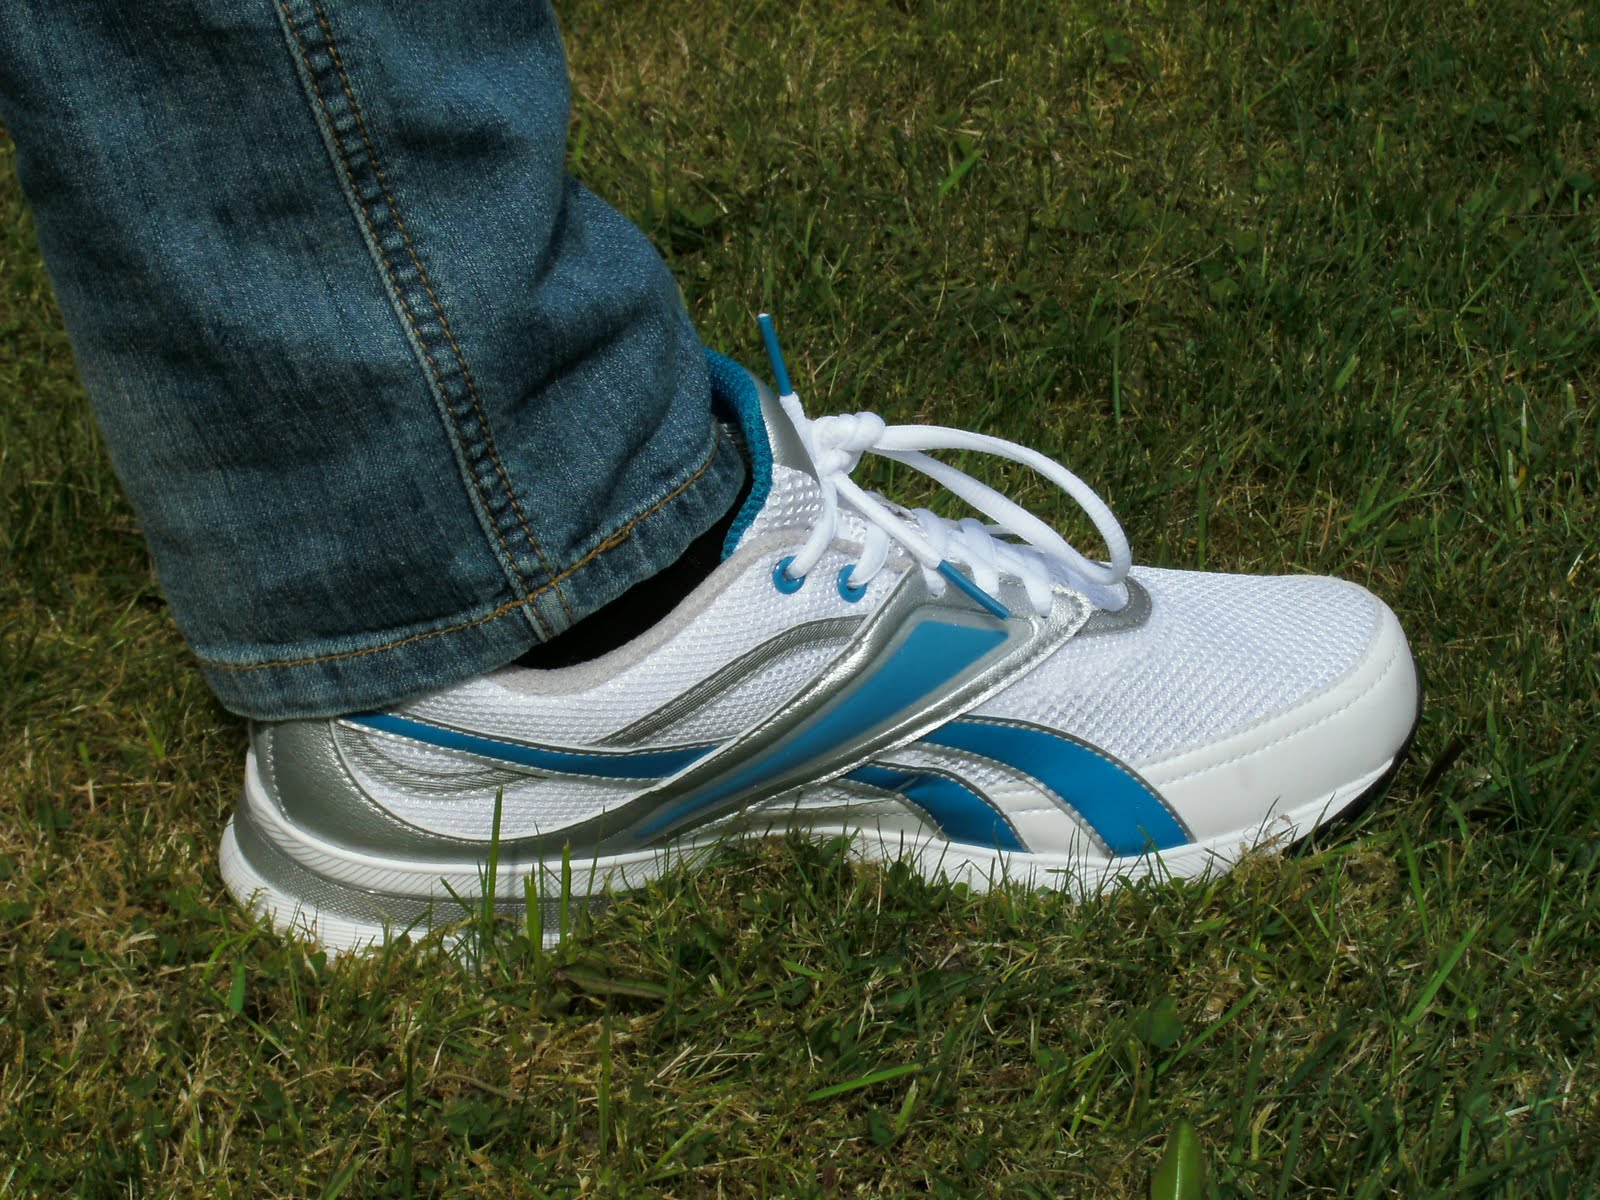 74cc06a1 Fashion 2011: Review: Reebok easy tone trainers